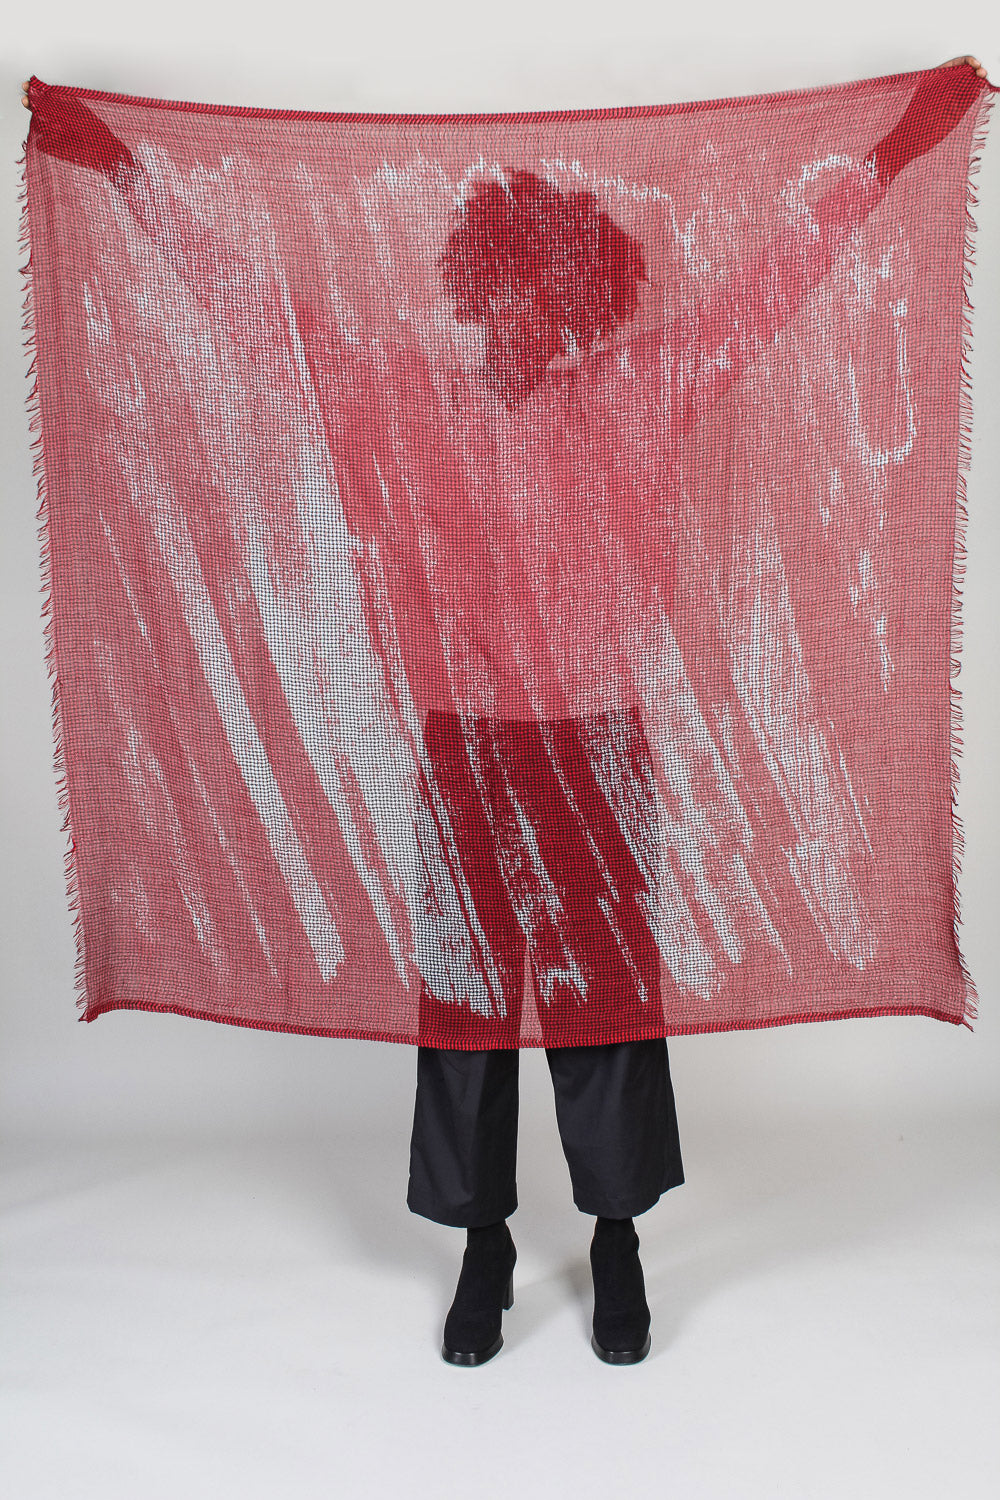 Ginga/Quadra Scarf in Red Paint